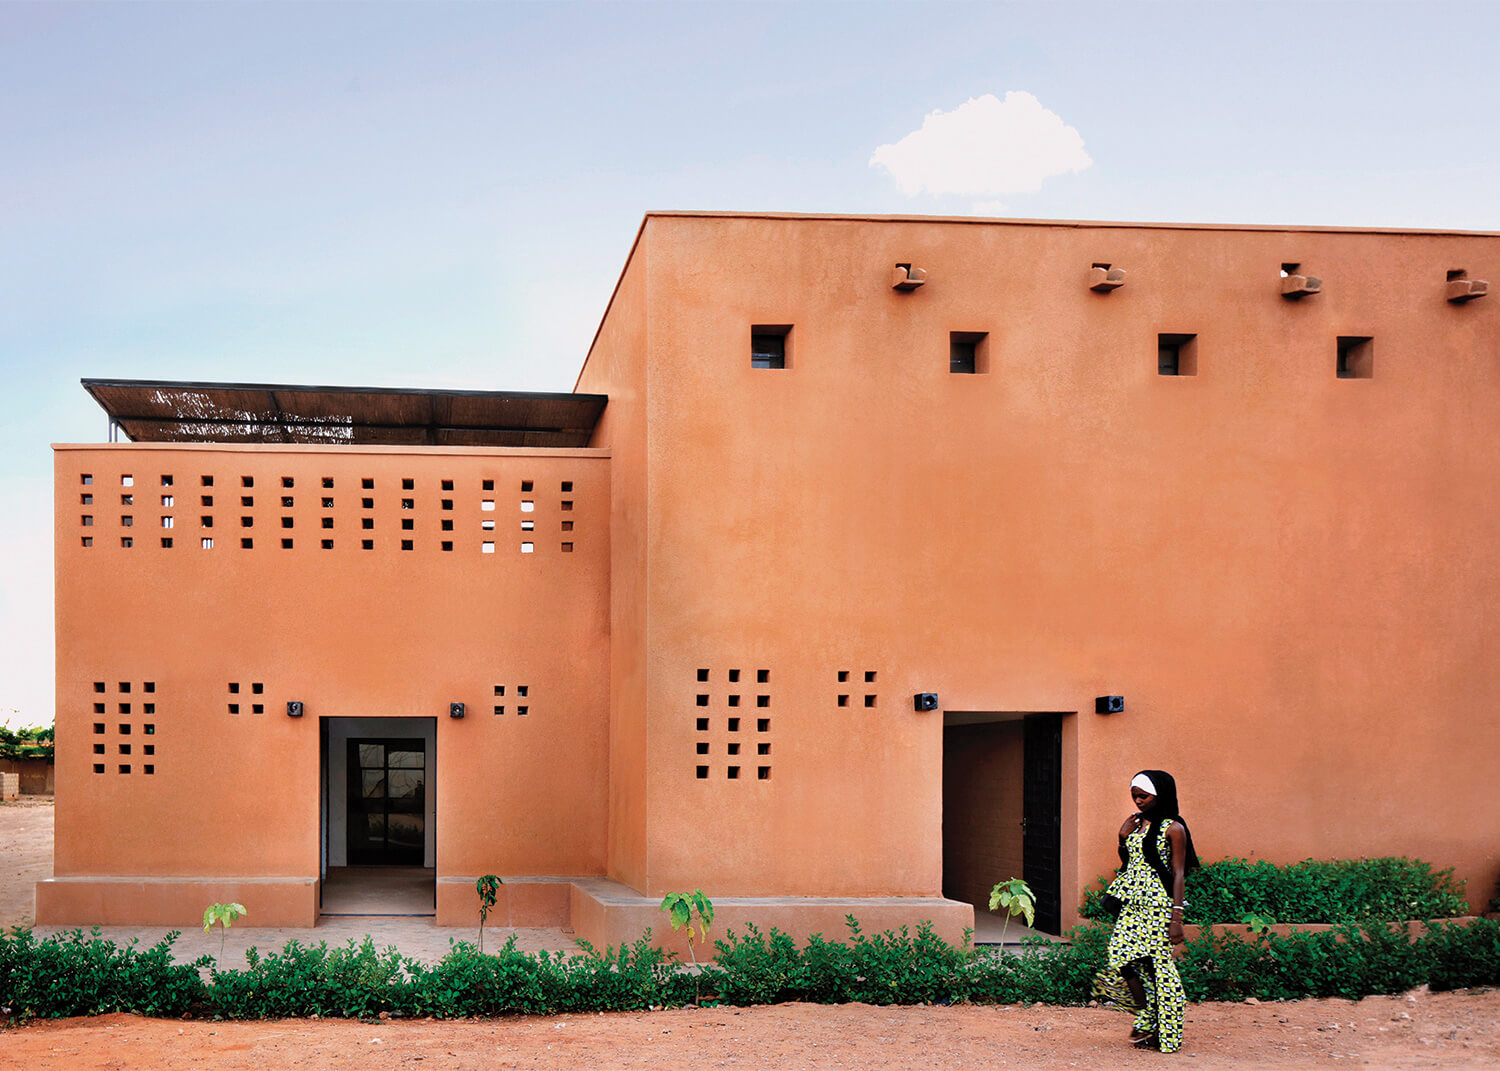 Niamey 2000 is a 1700 sqm (18,000 ft2) housing development that was designed in response to the housing crisis in Niamey, the capital of Niger | Yasaman Esmaili | Studio Chahar | STIRworld